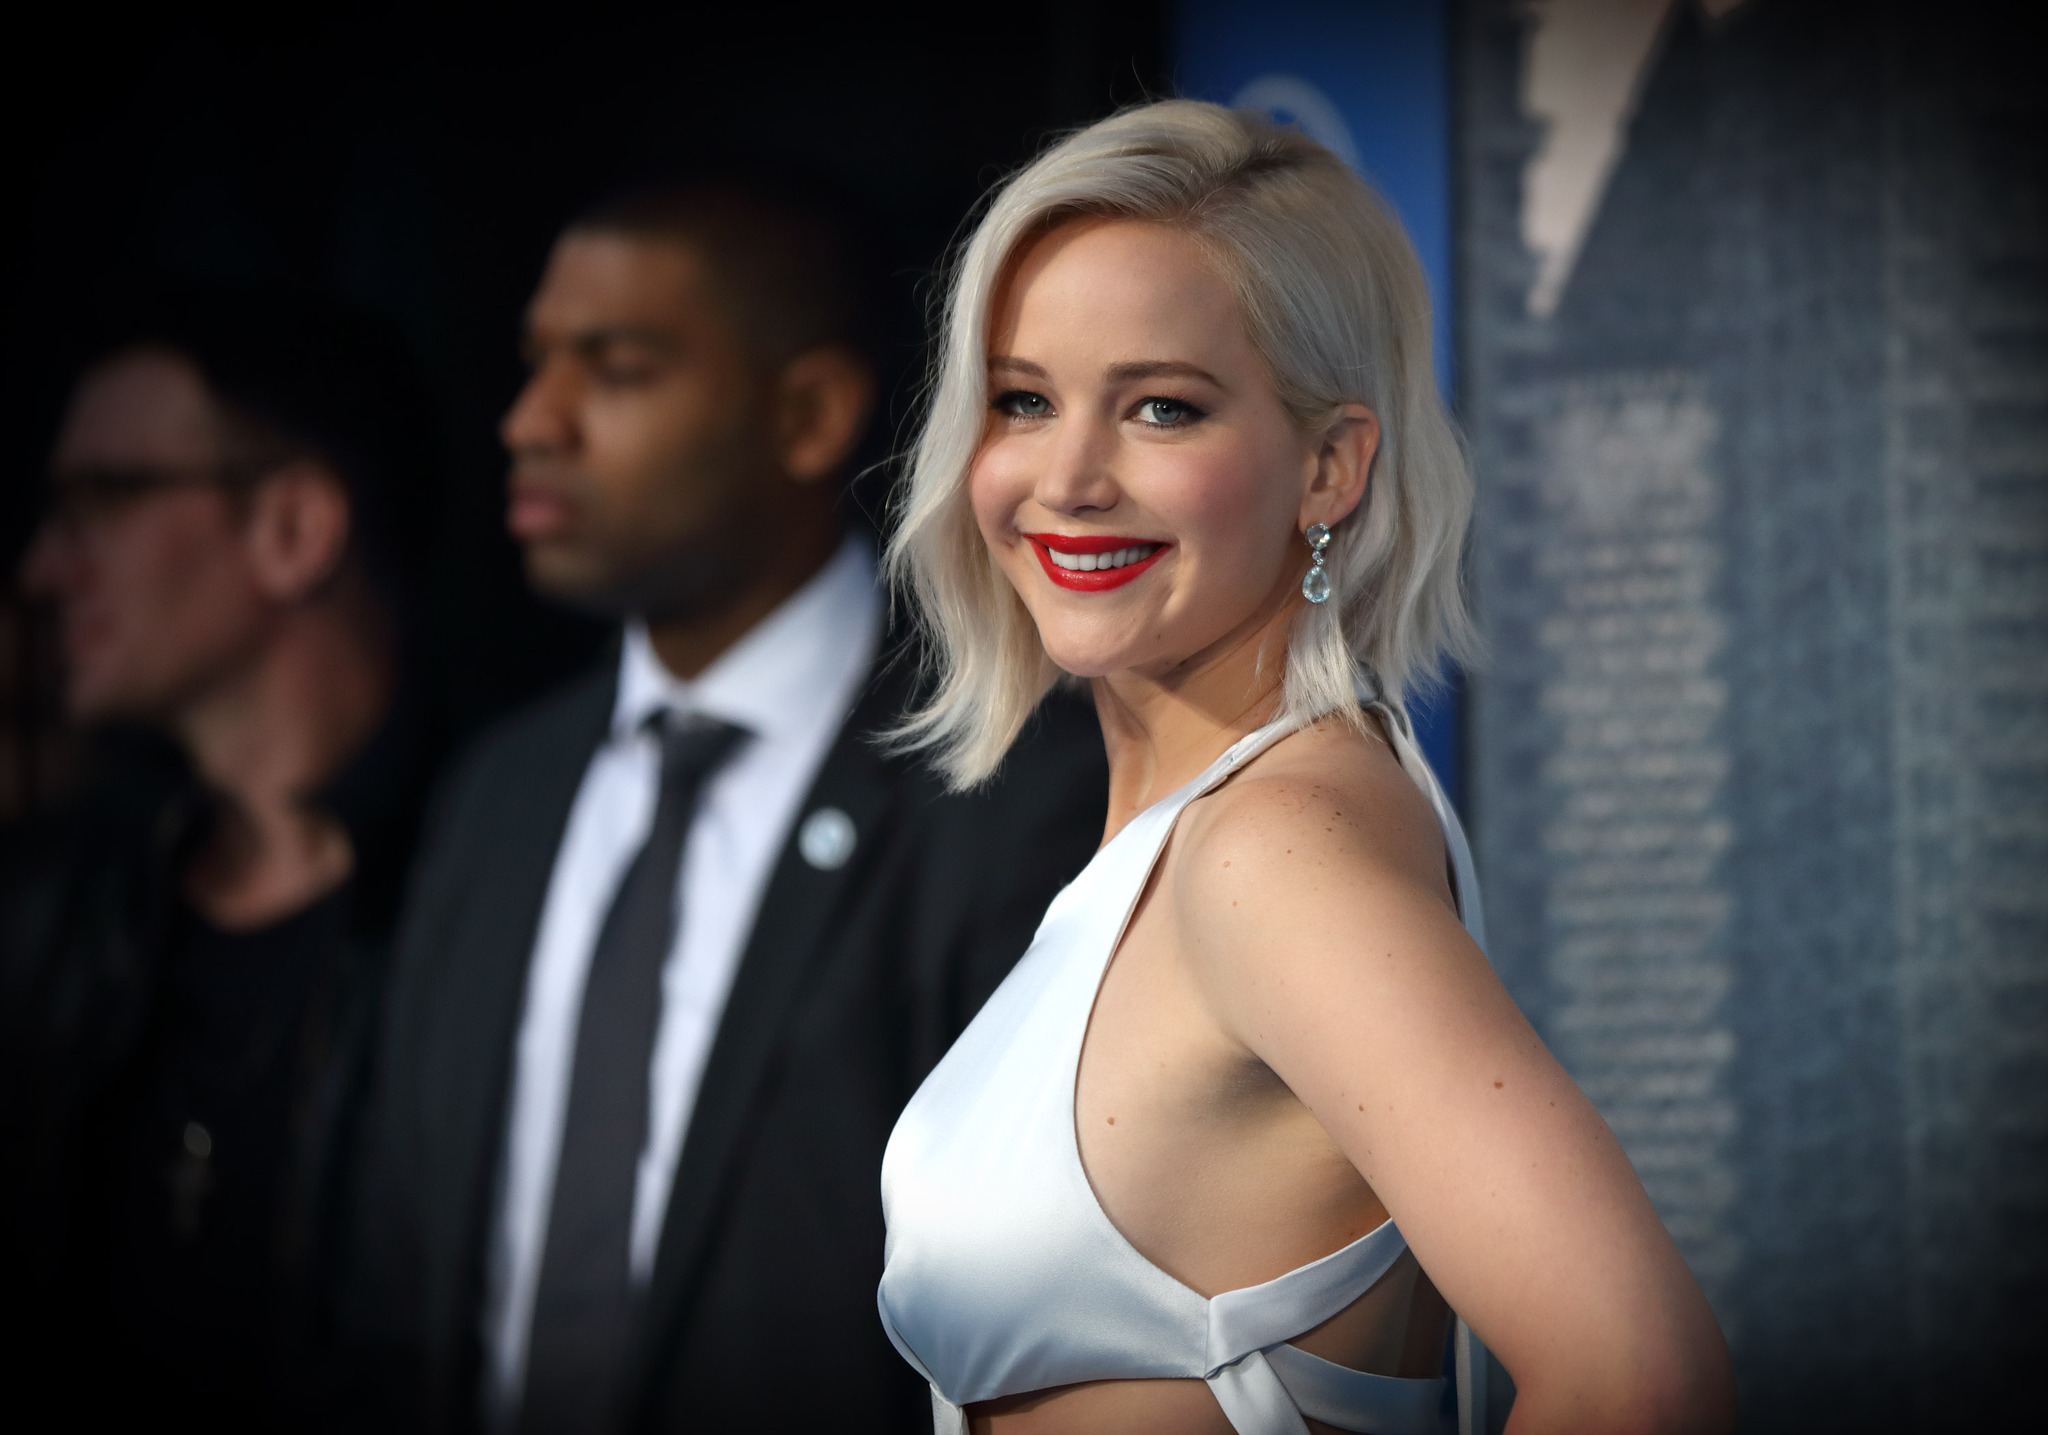 Jennifer Lawrence at an event for X-Men: Apocalypse (2016)